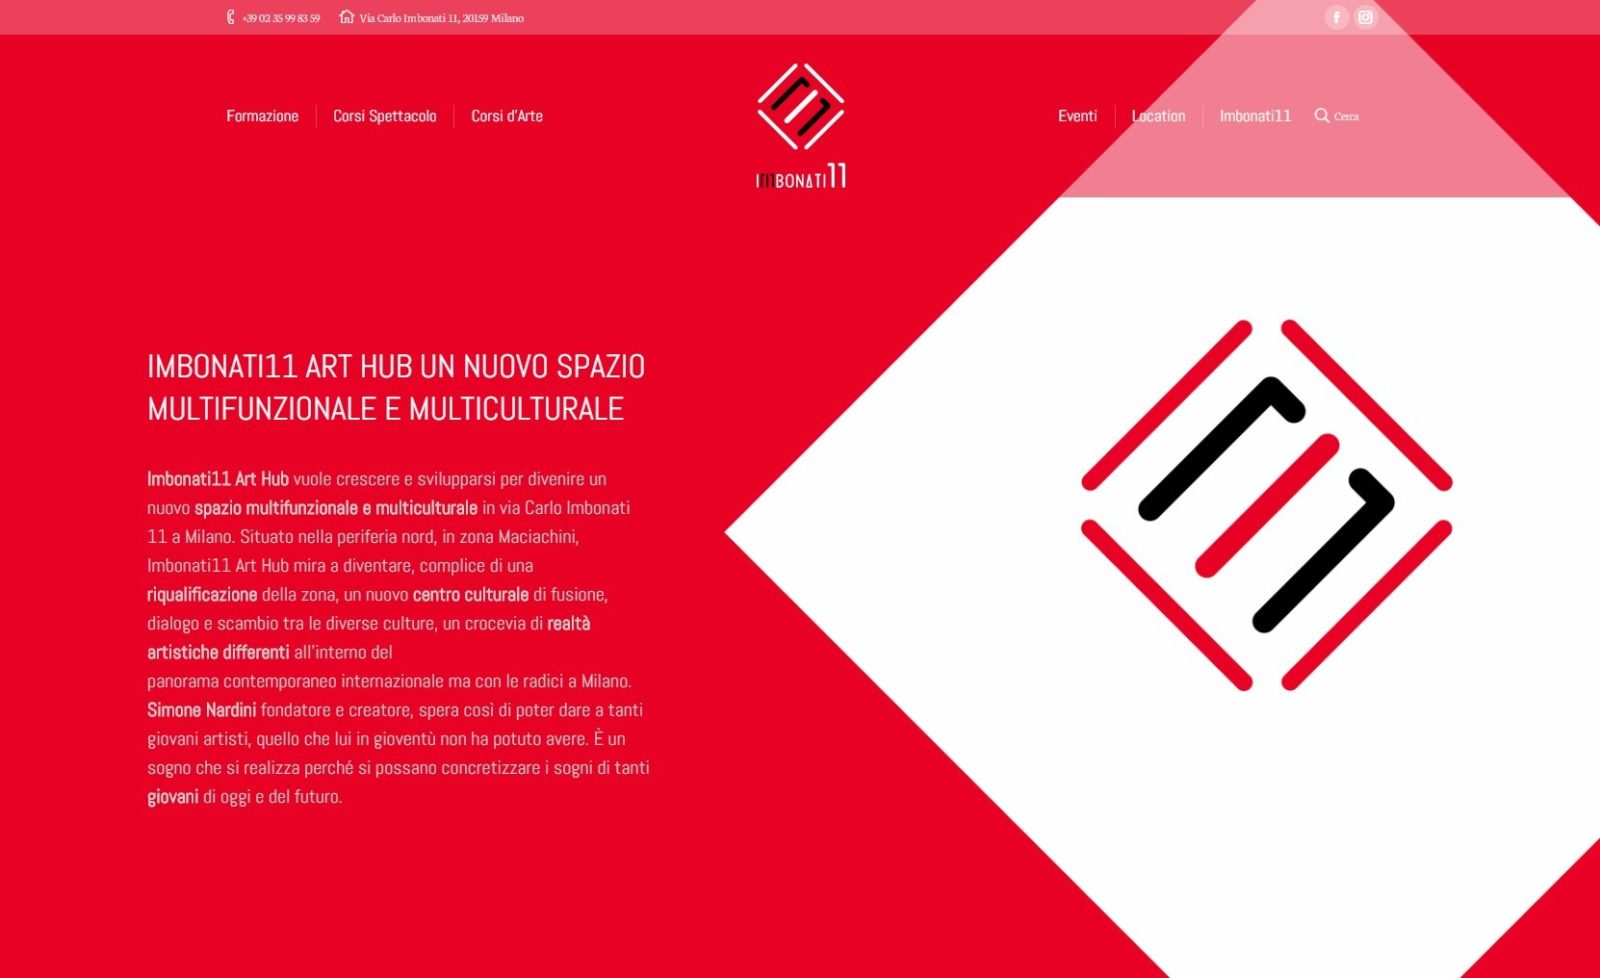 IMBONATI11 ART HUB – WEBSITE